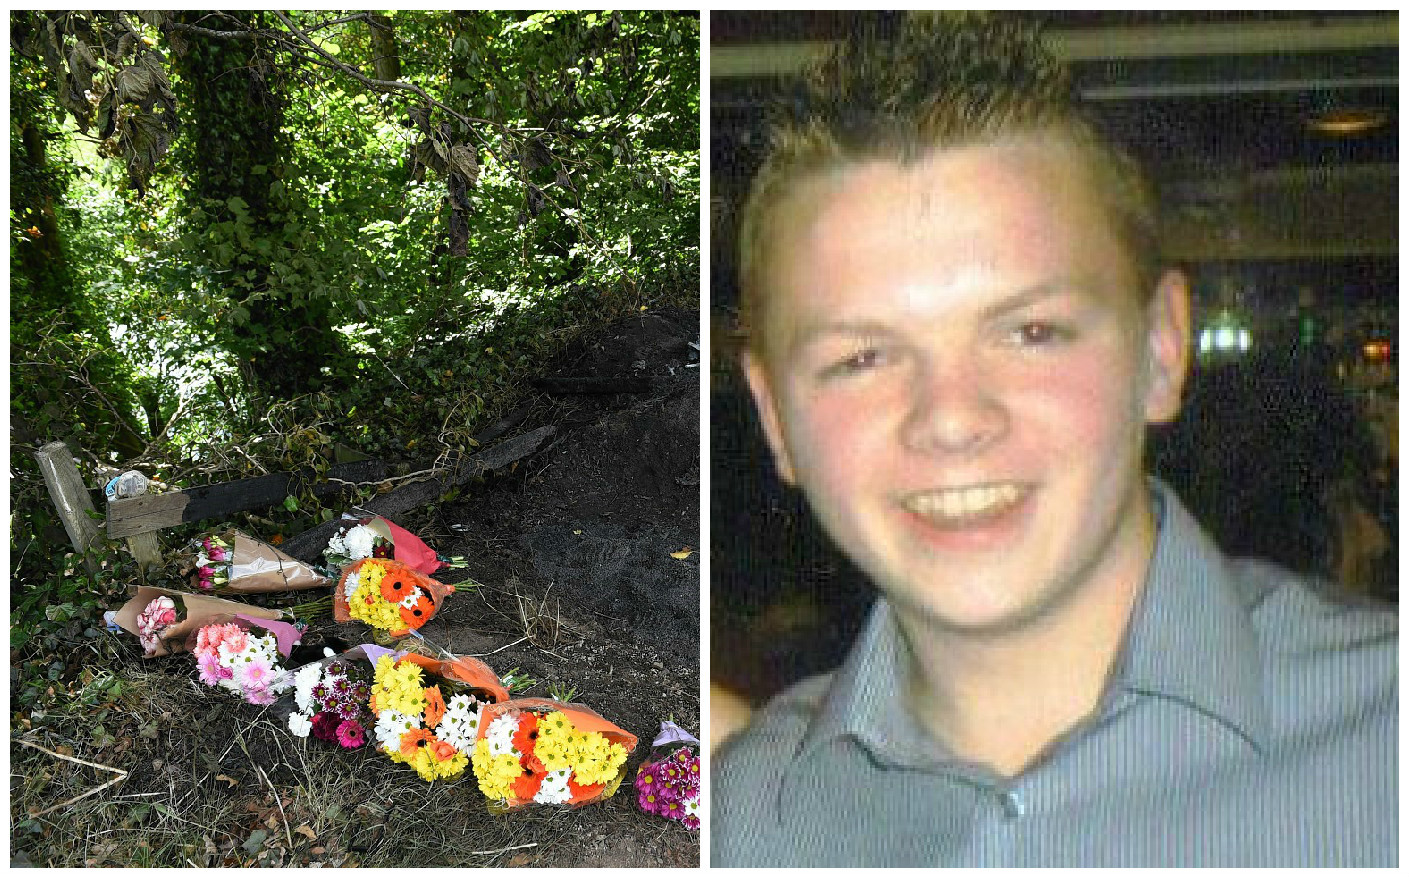 Flowers at the scene where Jordan Milne died